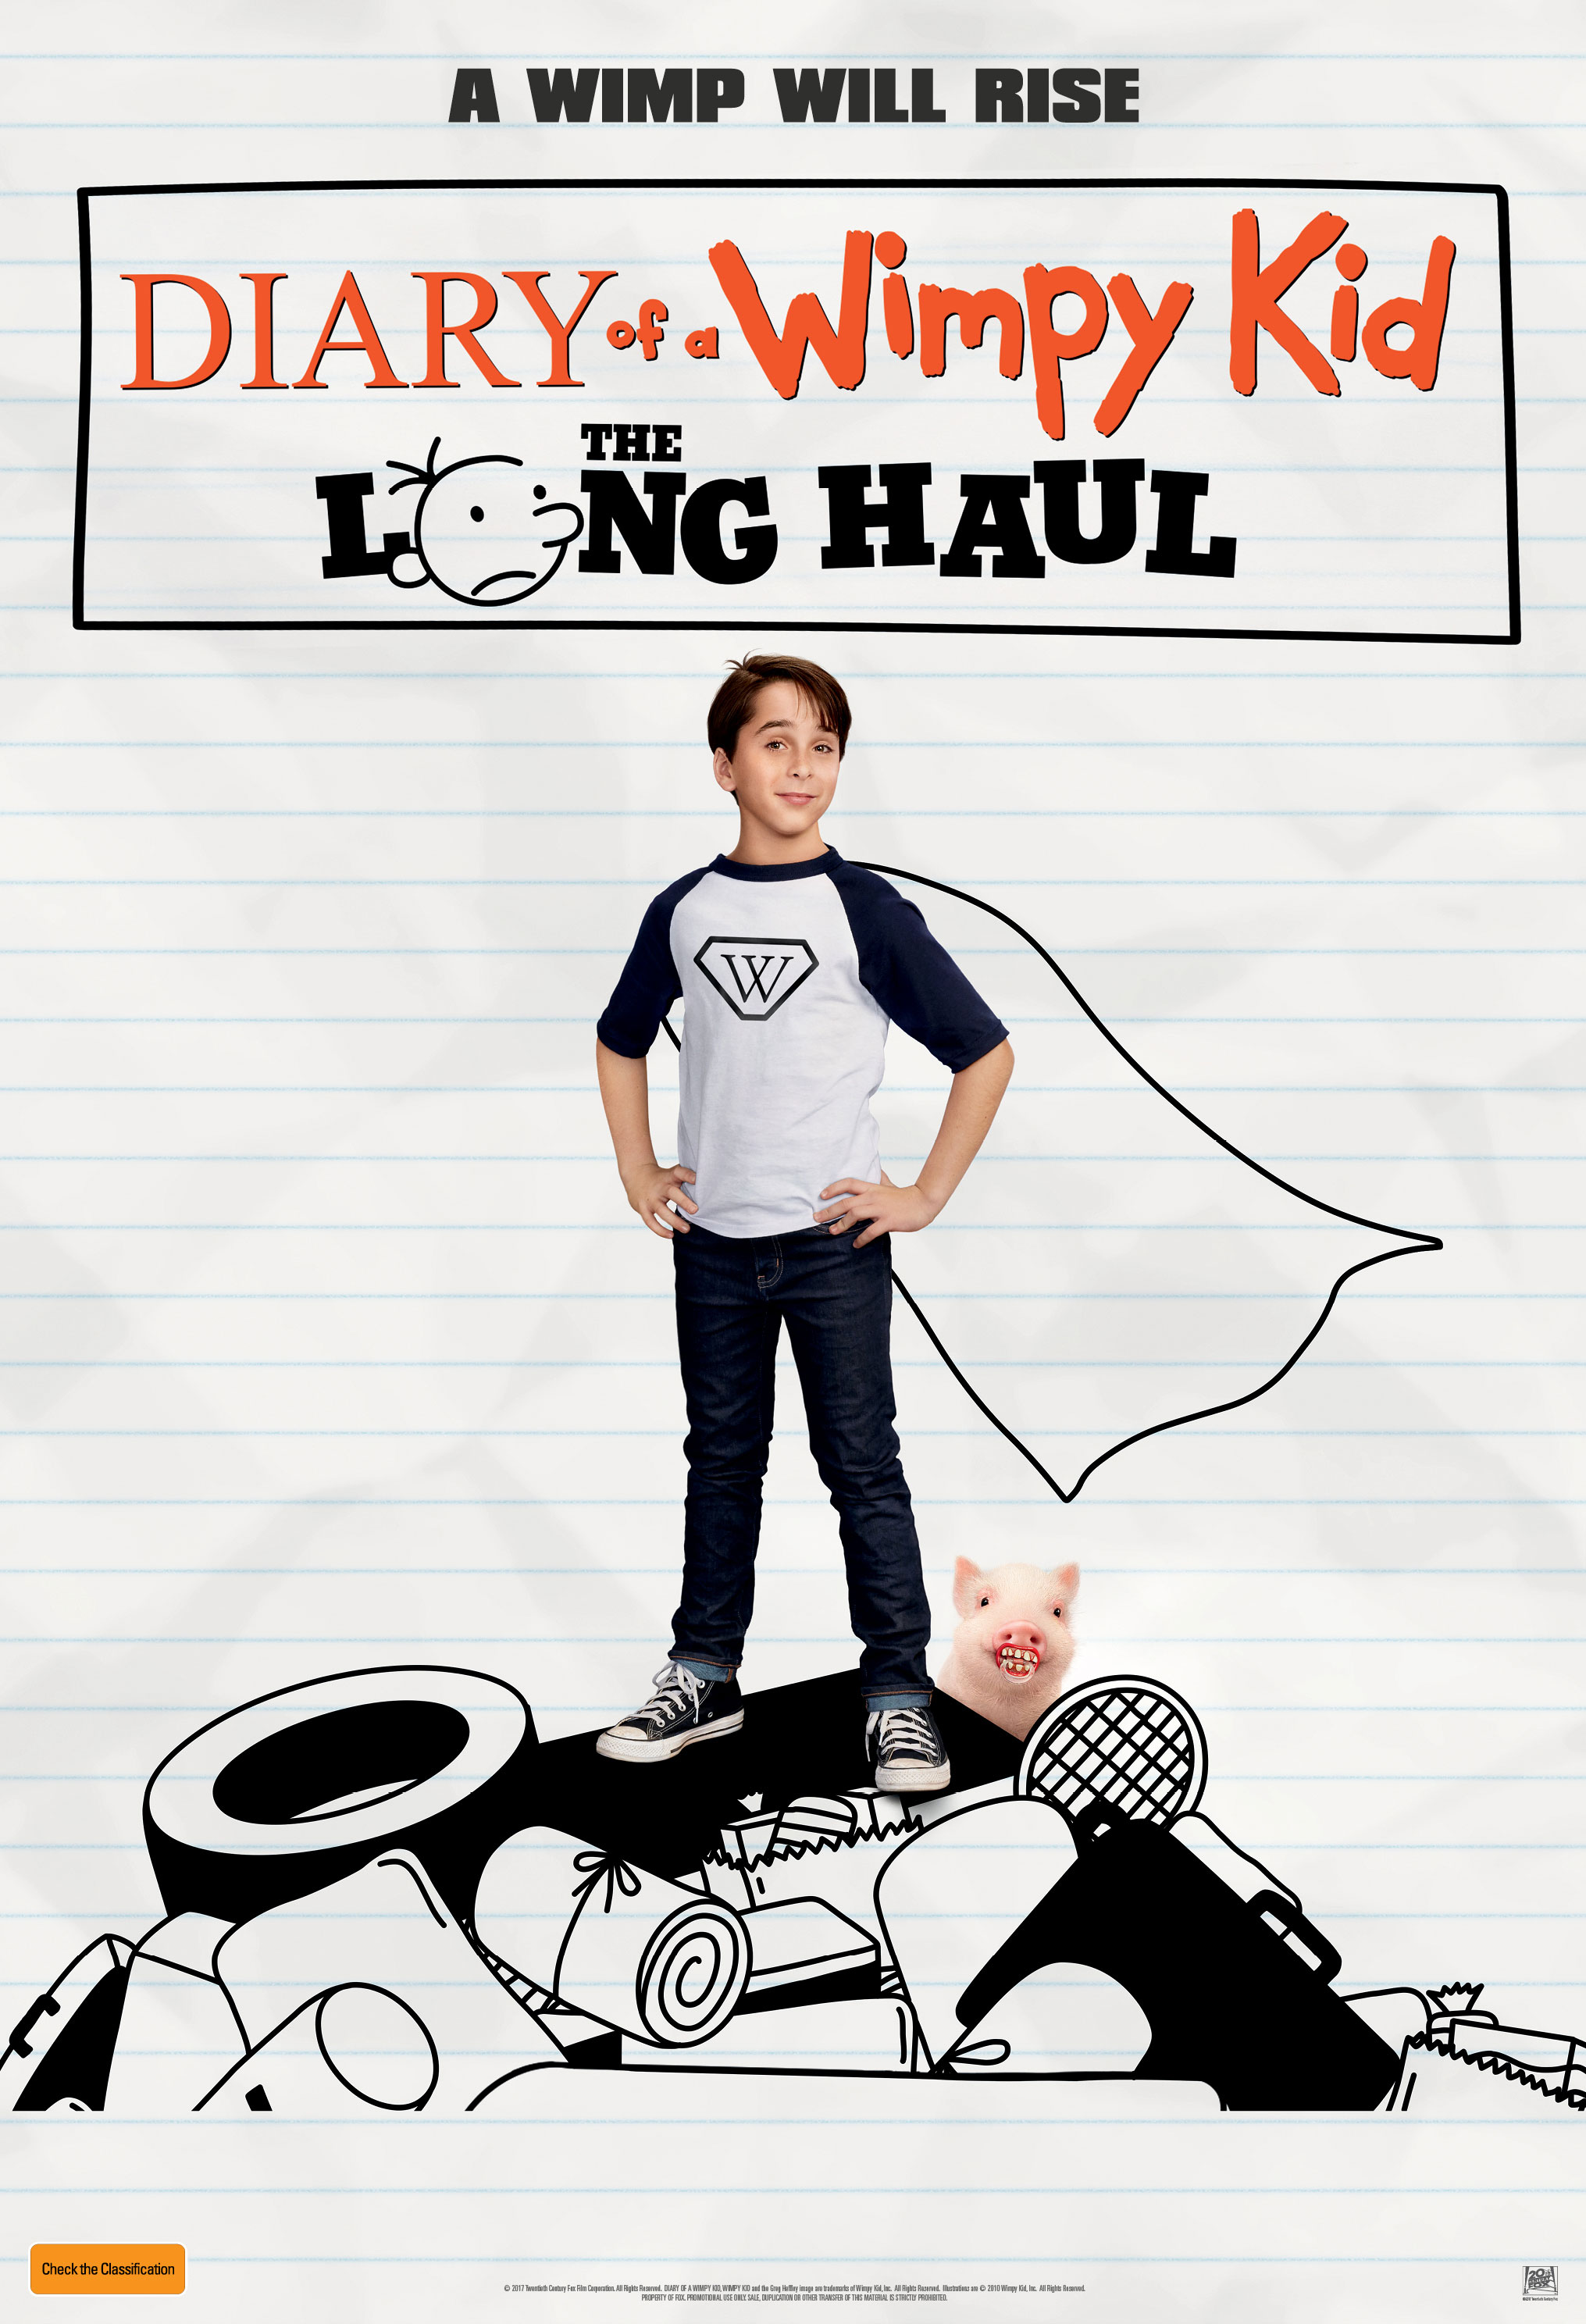 DIARY-OF-A-WIMPY-KID-THE-LONG-HAUL_Key-Art-Poster_Australia